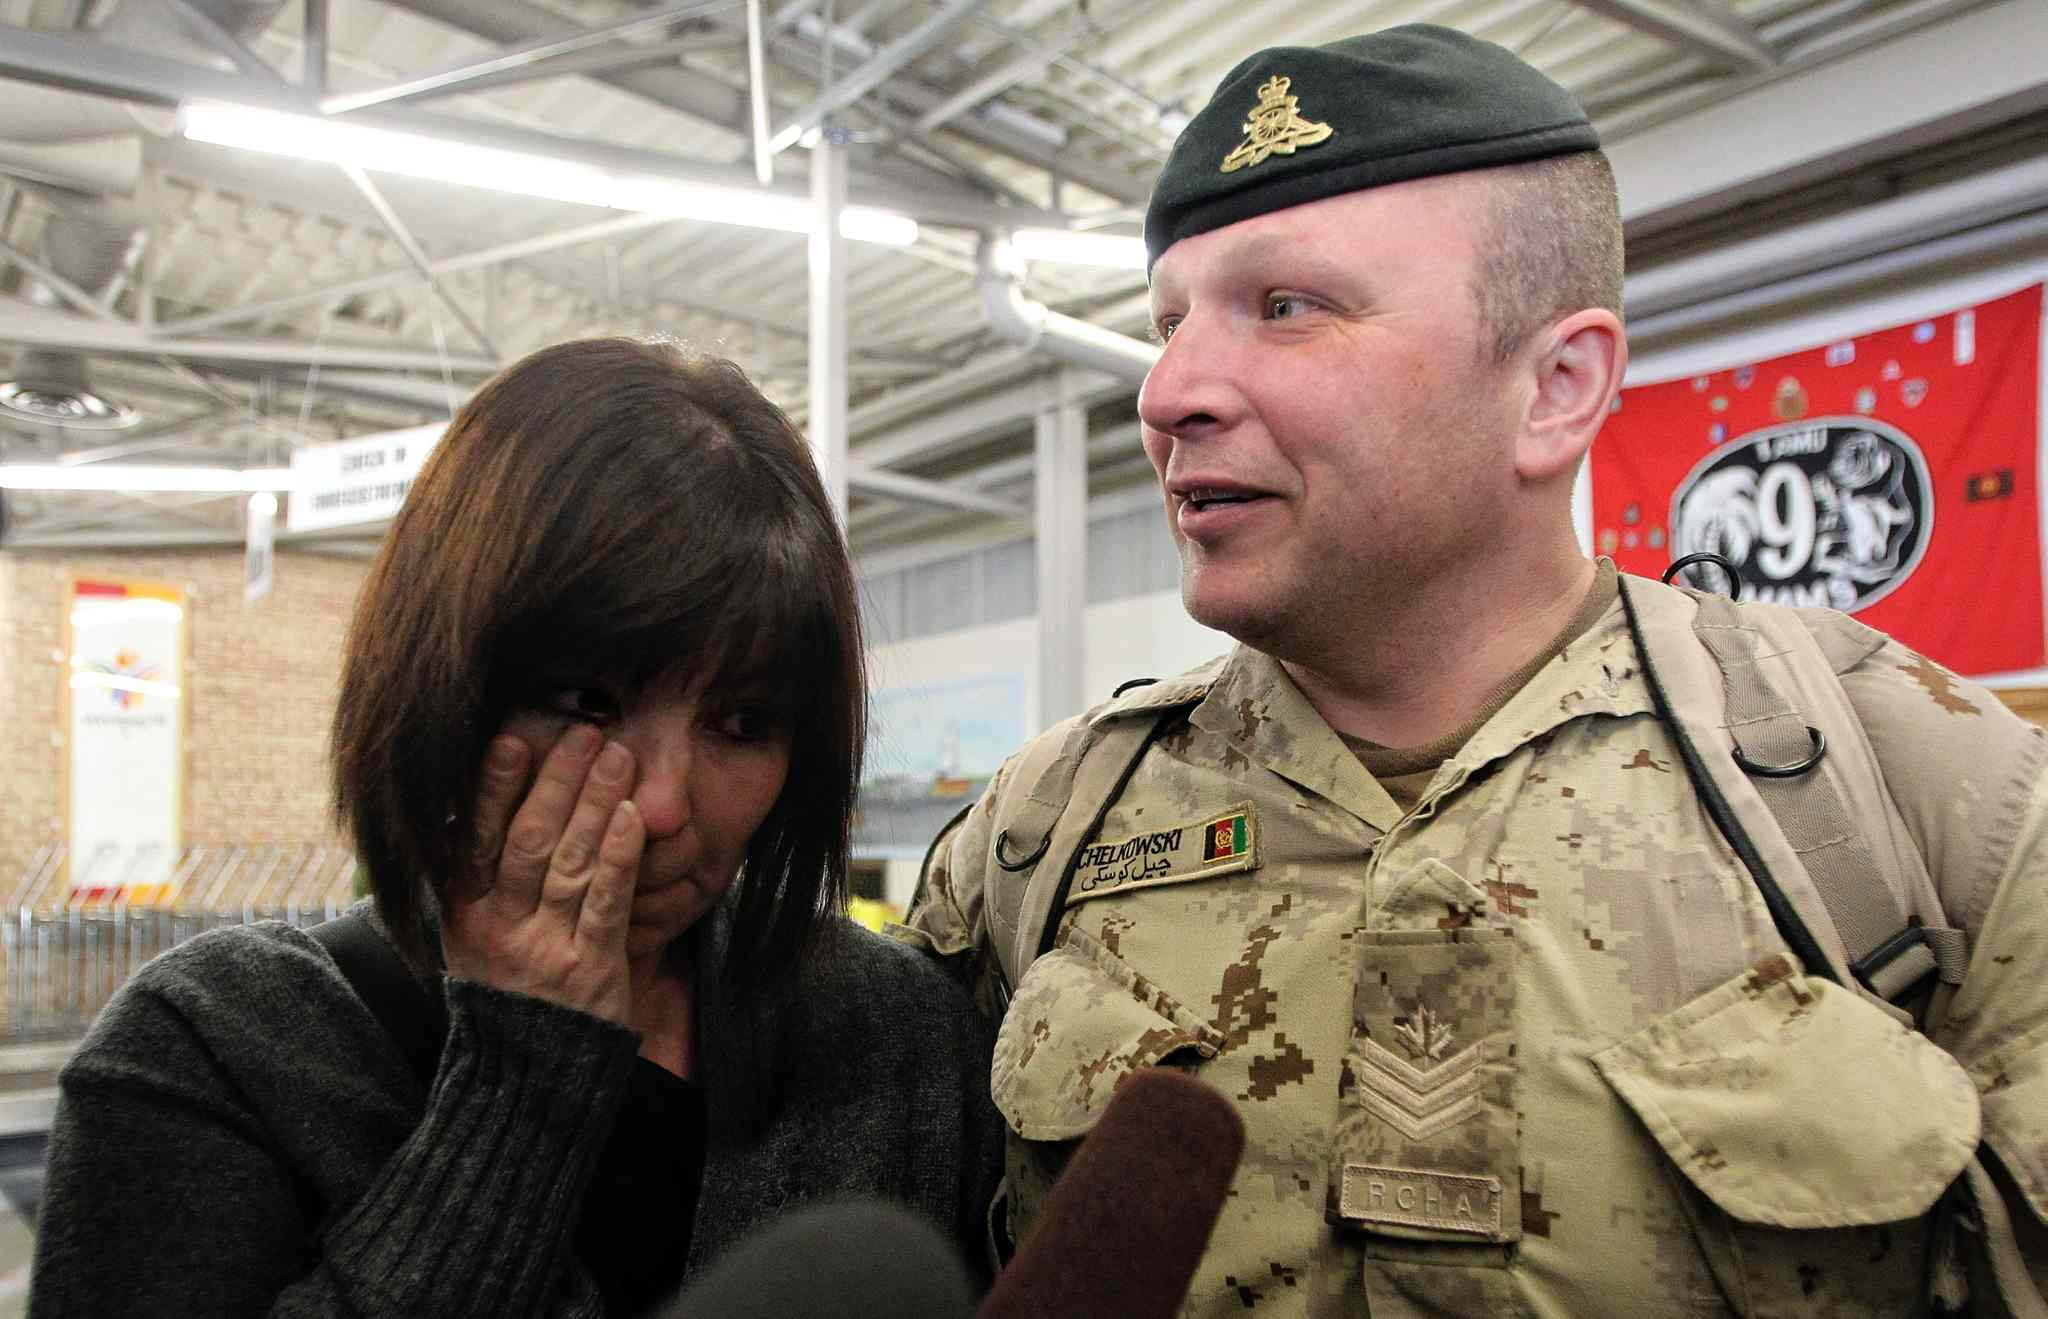 Sgt. David Chelkowski of the 1st RCHA is greeted by his wife Jennifer, who wipes away a tear Monday after greeting her husband at 17 Wing.